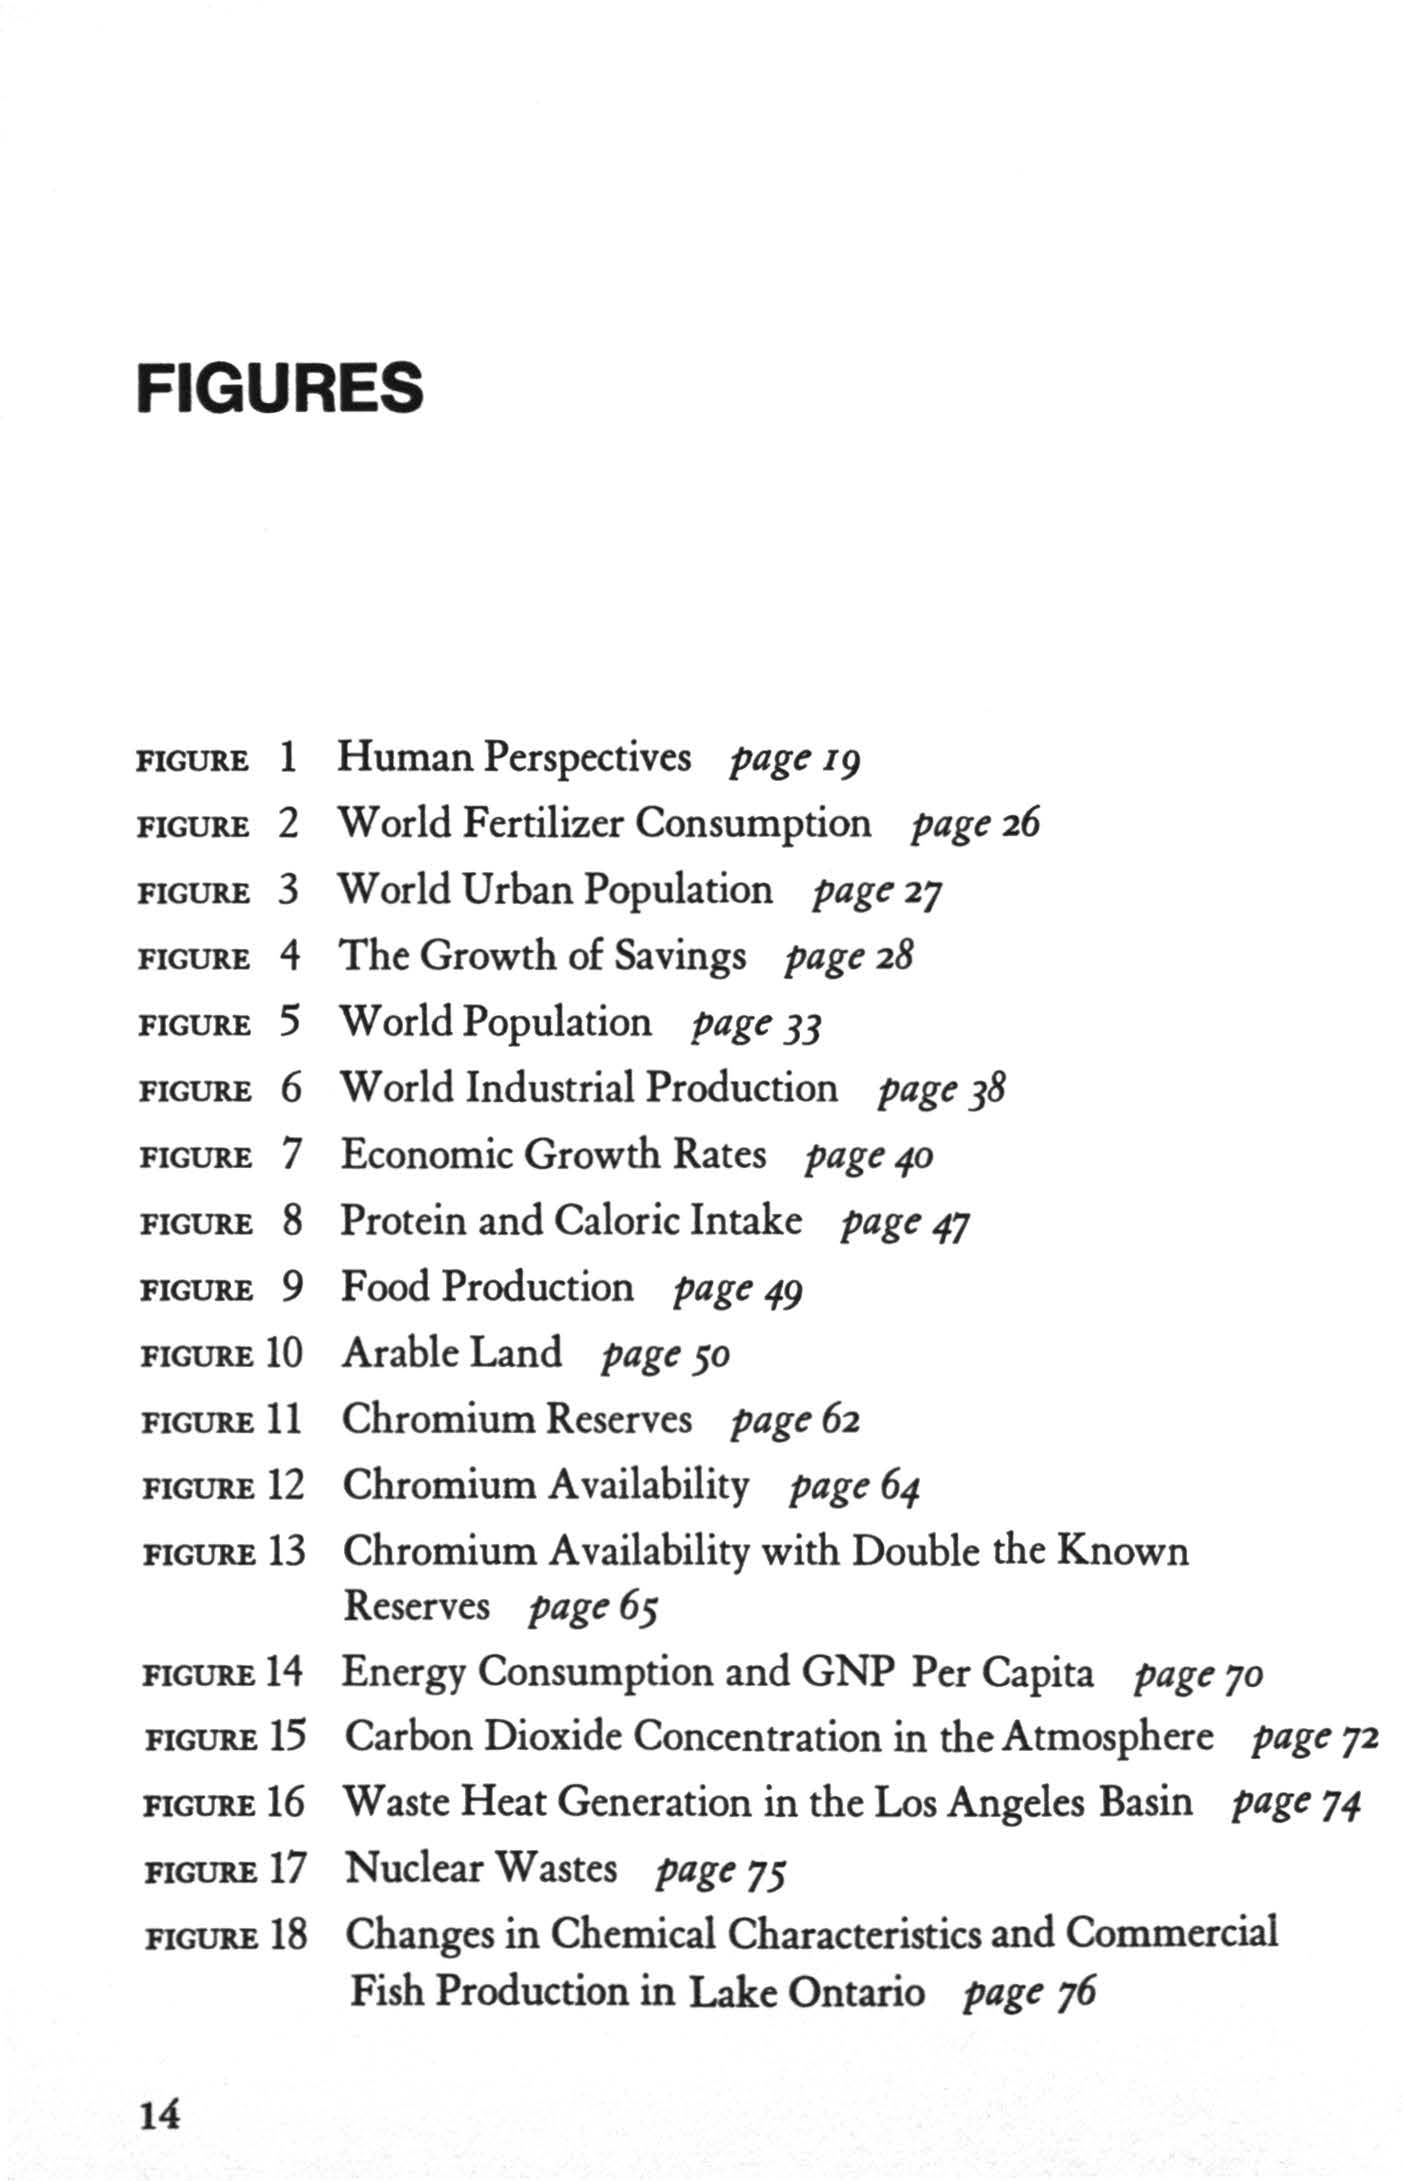 FGURES FGURE 1 FGURE 2 FGURE 3 FGURE 4 FGURE 5 FGURE 6 FGURE 7 FGURE 8 FGURE 9 FGURE 10 FGURE 11 FGURE 12 FGURE 13 Human Perspectives 9 World Fertilizer Consumption page 26 World Urban Population 27